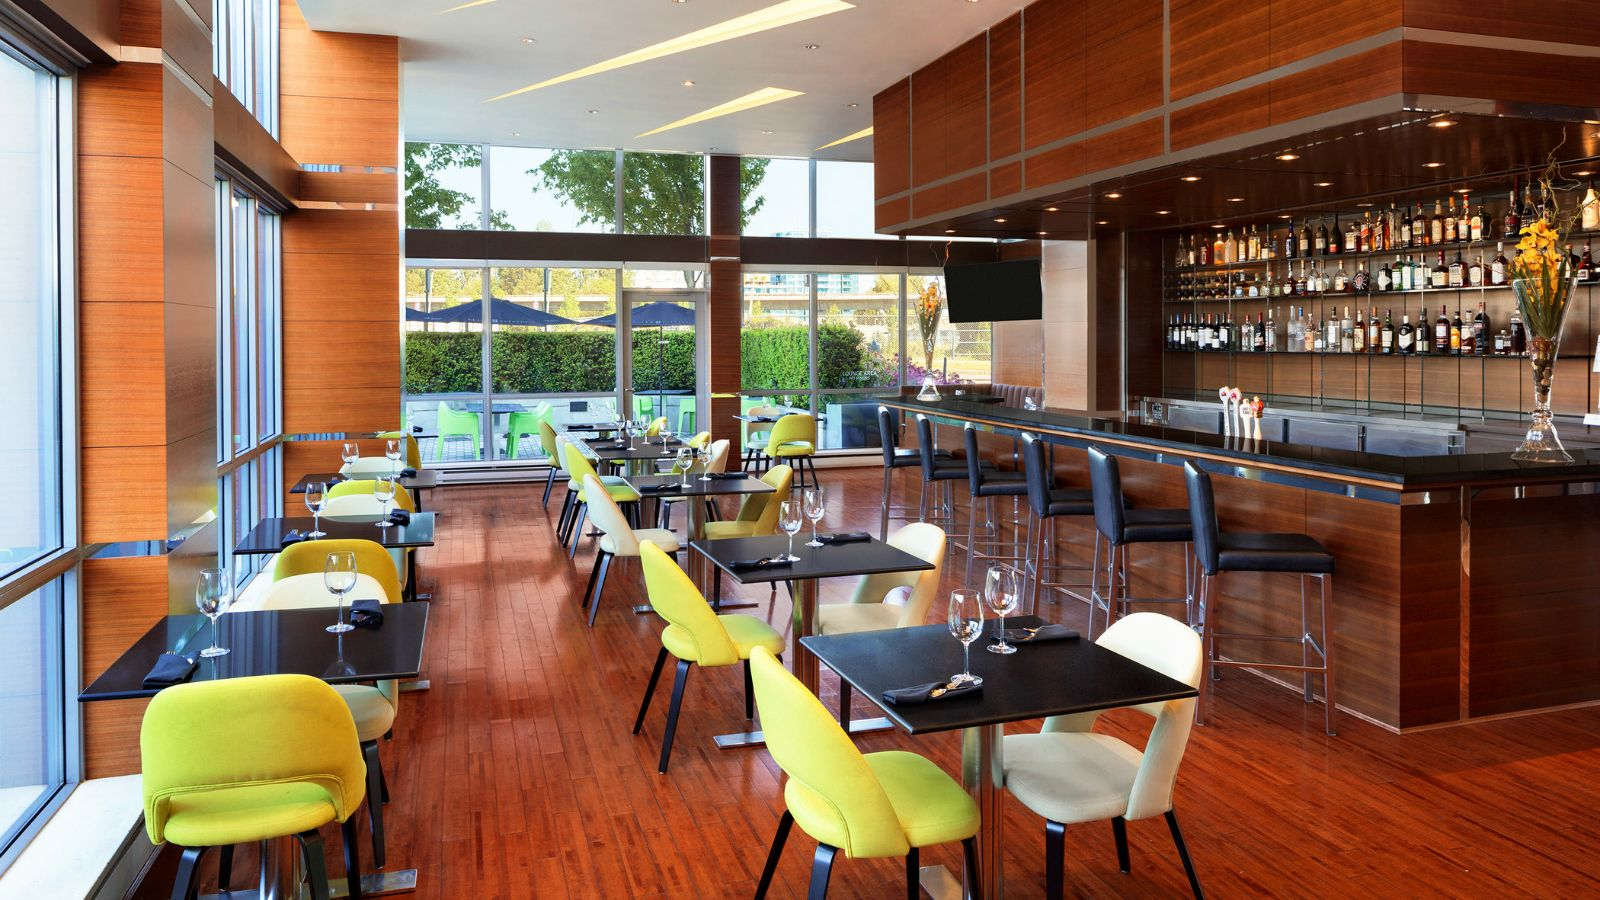 The Apron Restaurant - Vancouver Airport Meeting Space